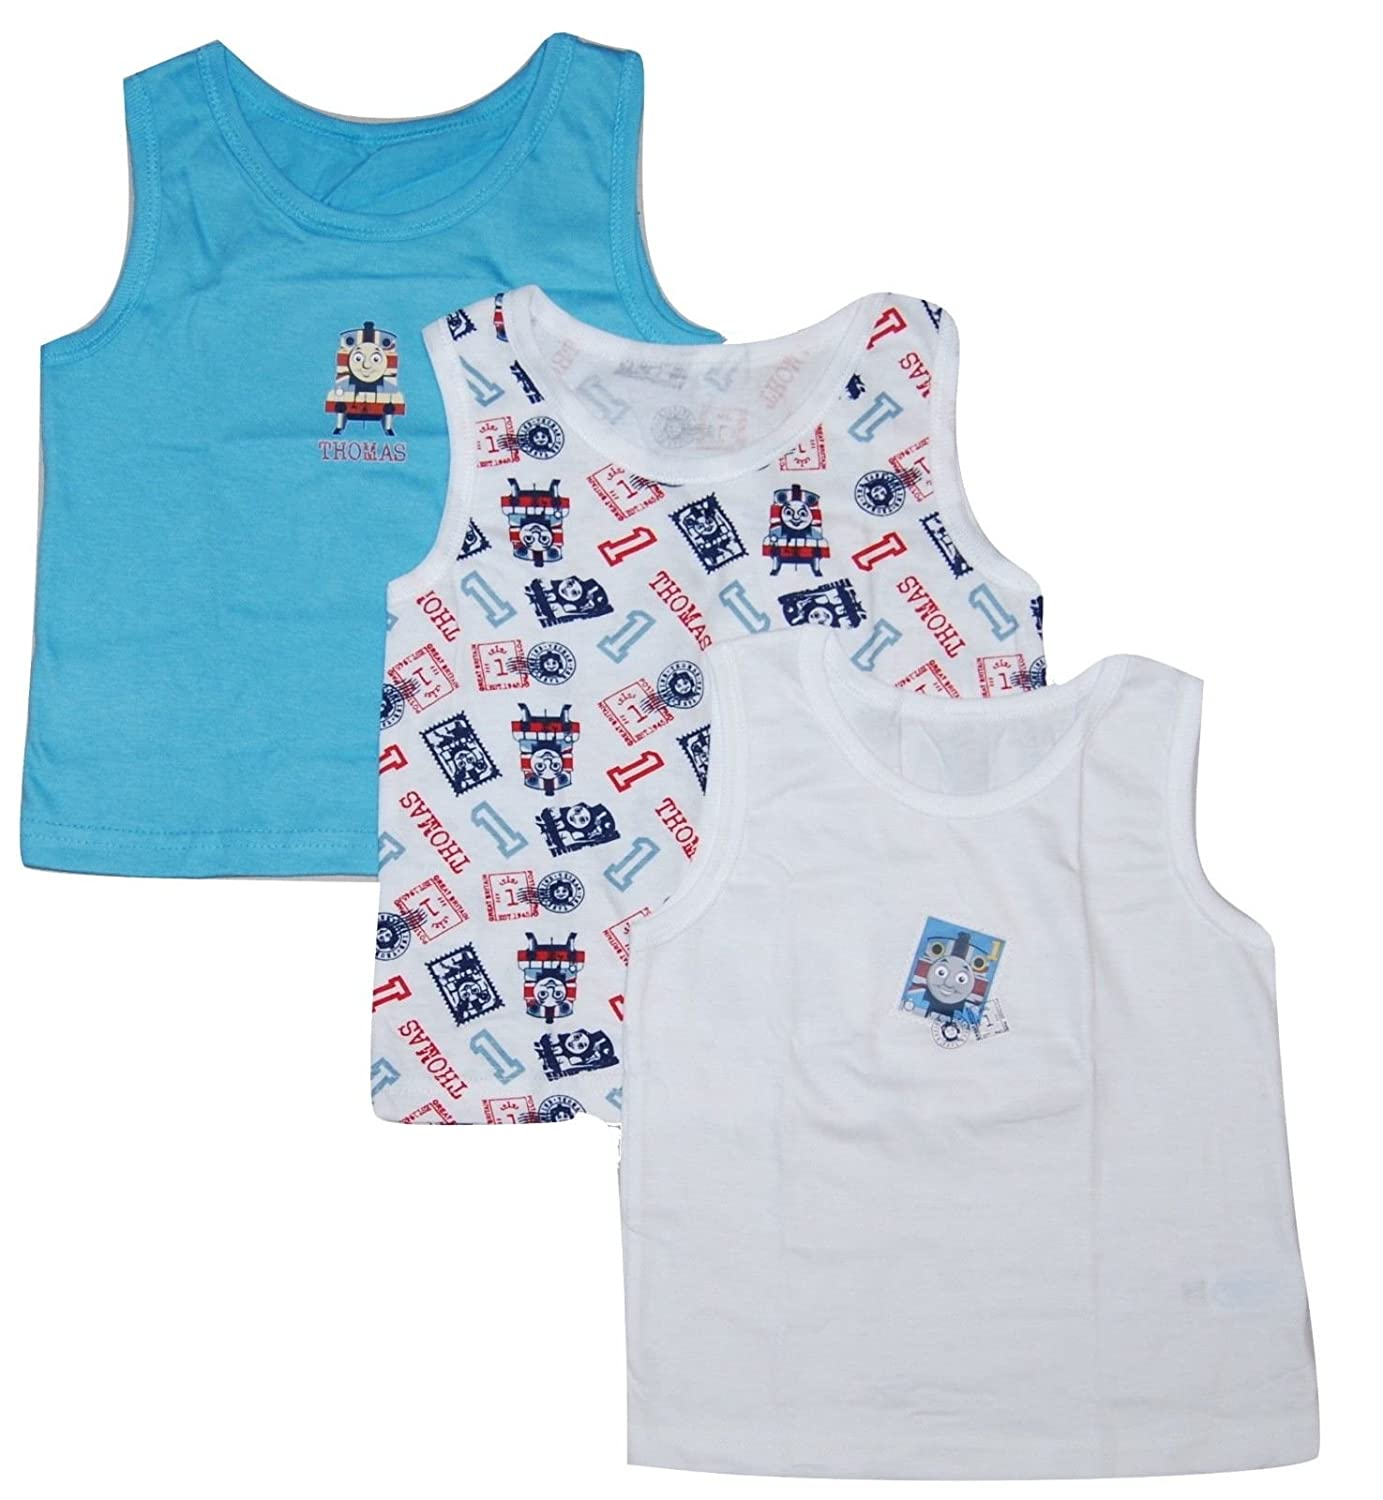 Boys 3 Pack Vest Tops Underwear Thomas The Tank Engine